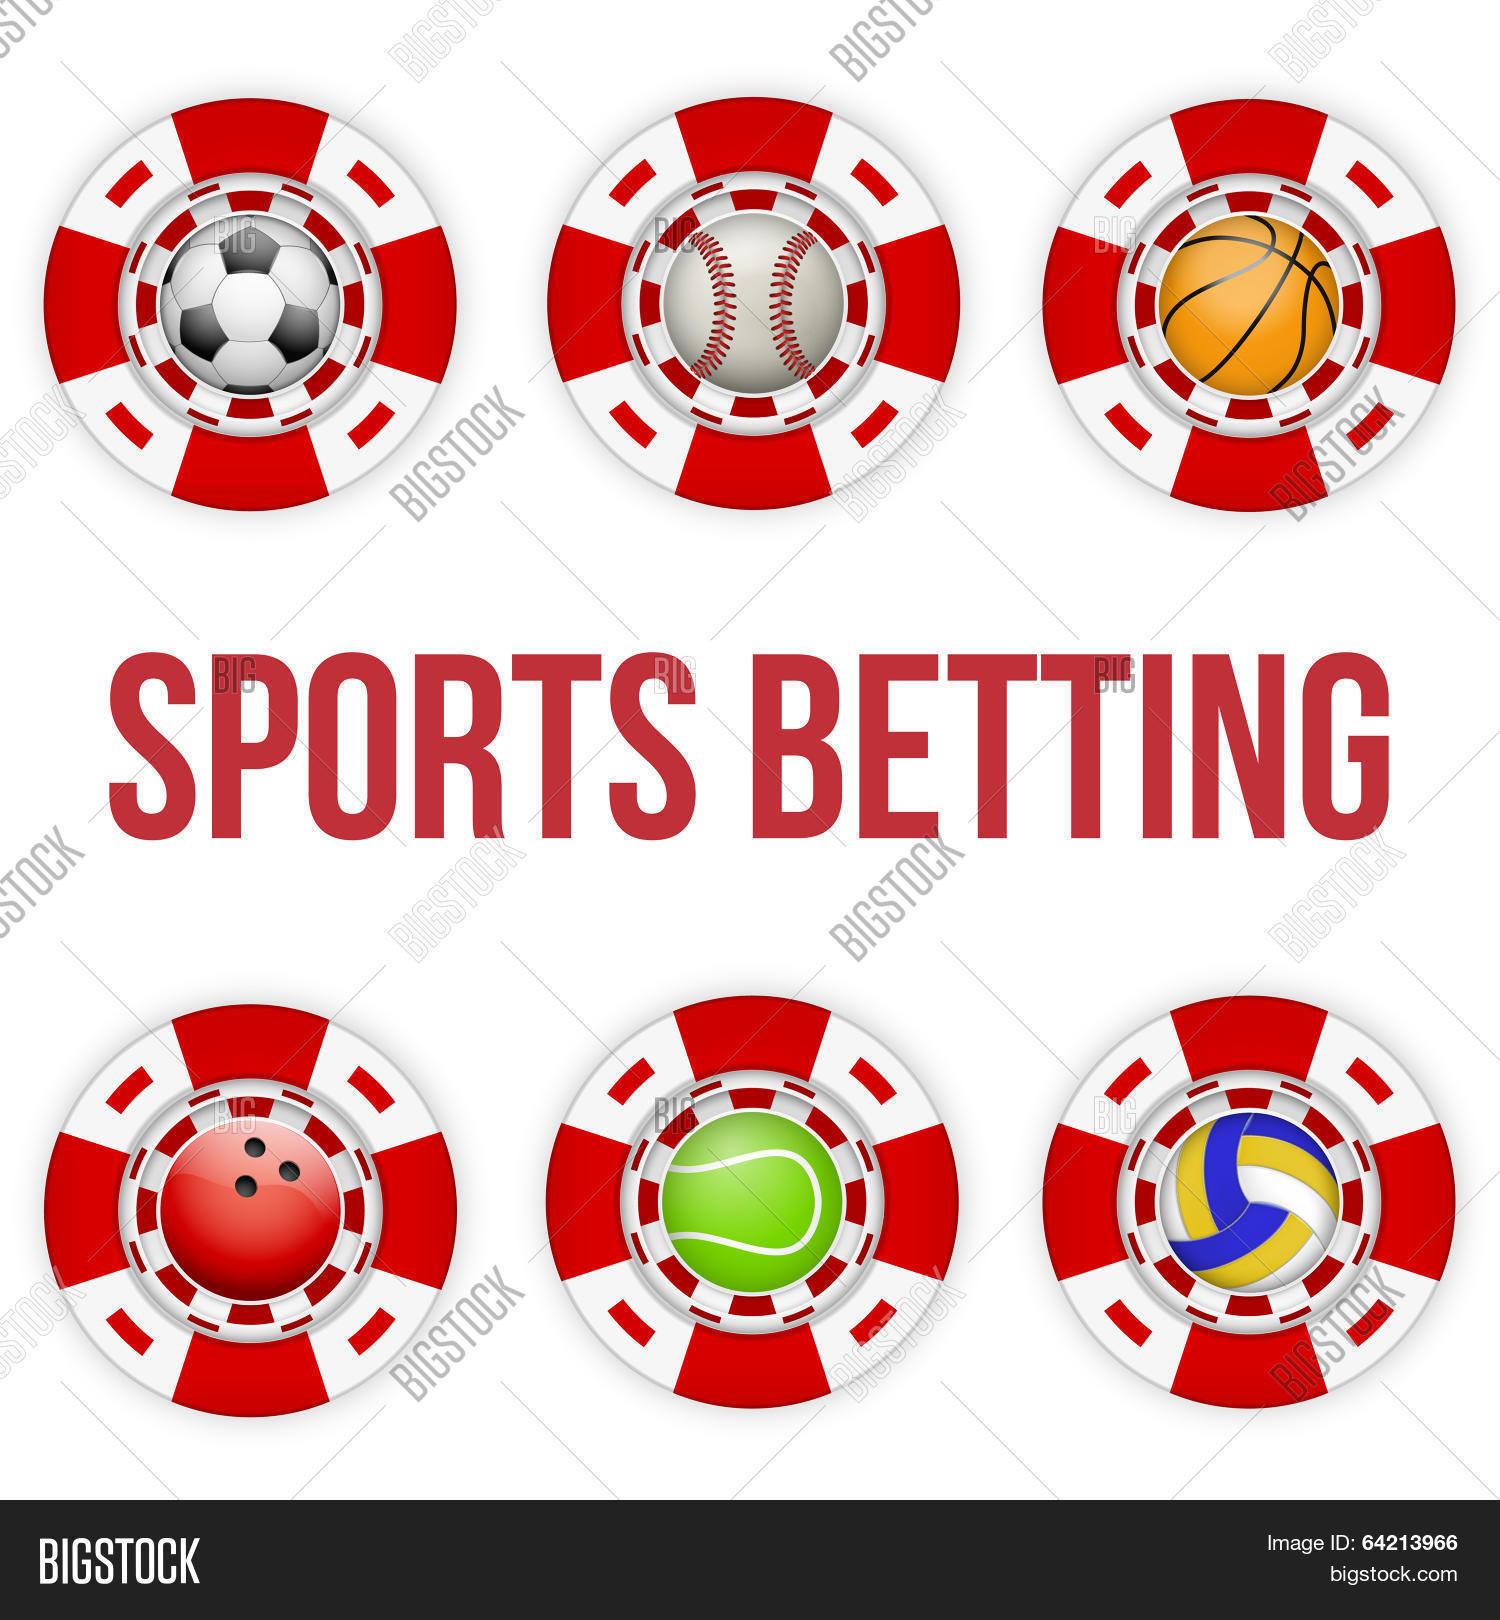 app,application,ball,baseball,baseball vector,betting,board,bowling,bowling ball,cash,casino,chance,chips,club,color,currency,design,element,excitement,football,fortune,gamble,gambling,game,icon,illustration,isolated,leisure,money,one,online,pari-mutuel,play,playing,premium,risk,sign,soccer,soccer ball,software,sport,sports balls,square,sweepstakes,symbol,tennis,totalizator,tote,toto,vector,win,winner,winning